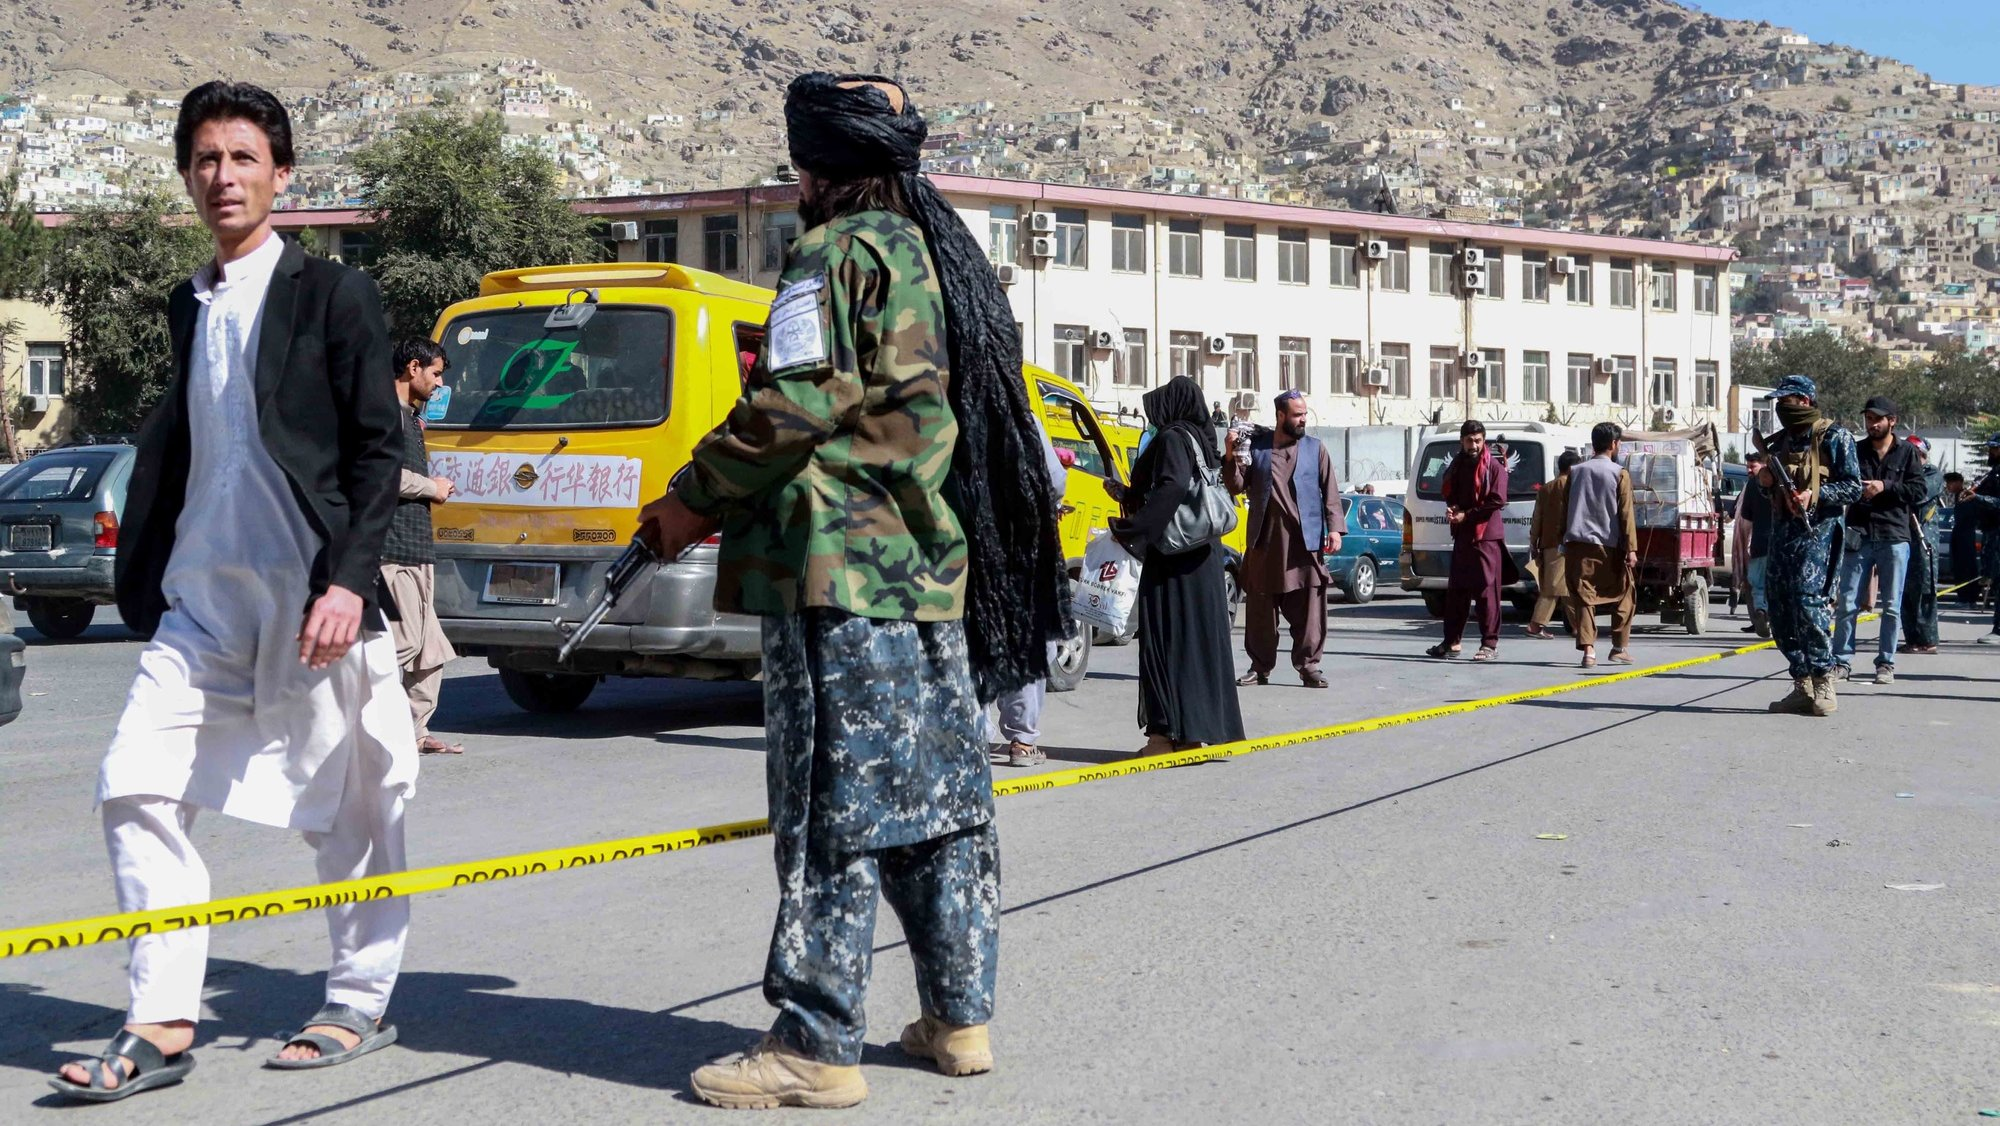 epa09534068 Taliban stand guard at the scene of a bomb blast in Kabul, Afghanistan, 20 October 2021. At least two people were killed according to the Afghan Interior Ministry in a blast that earlier rocked the Deh Mazang district in Kabul.  EPA/STRINGER